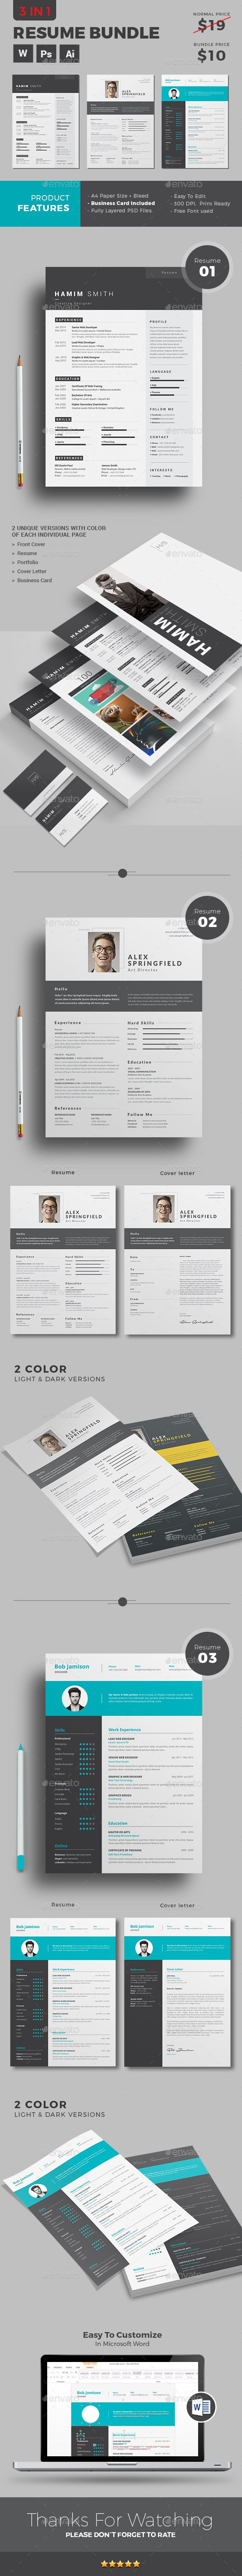 368 Best Resumes Images On Pinterest Resume Cv Resume Templates